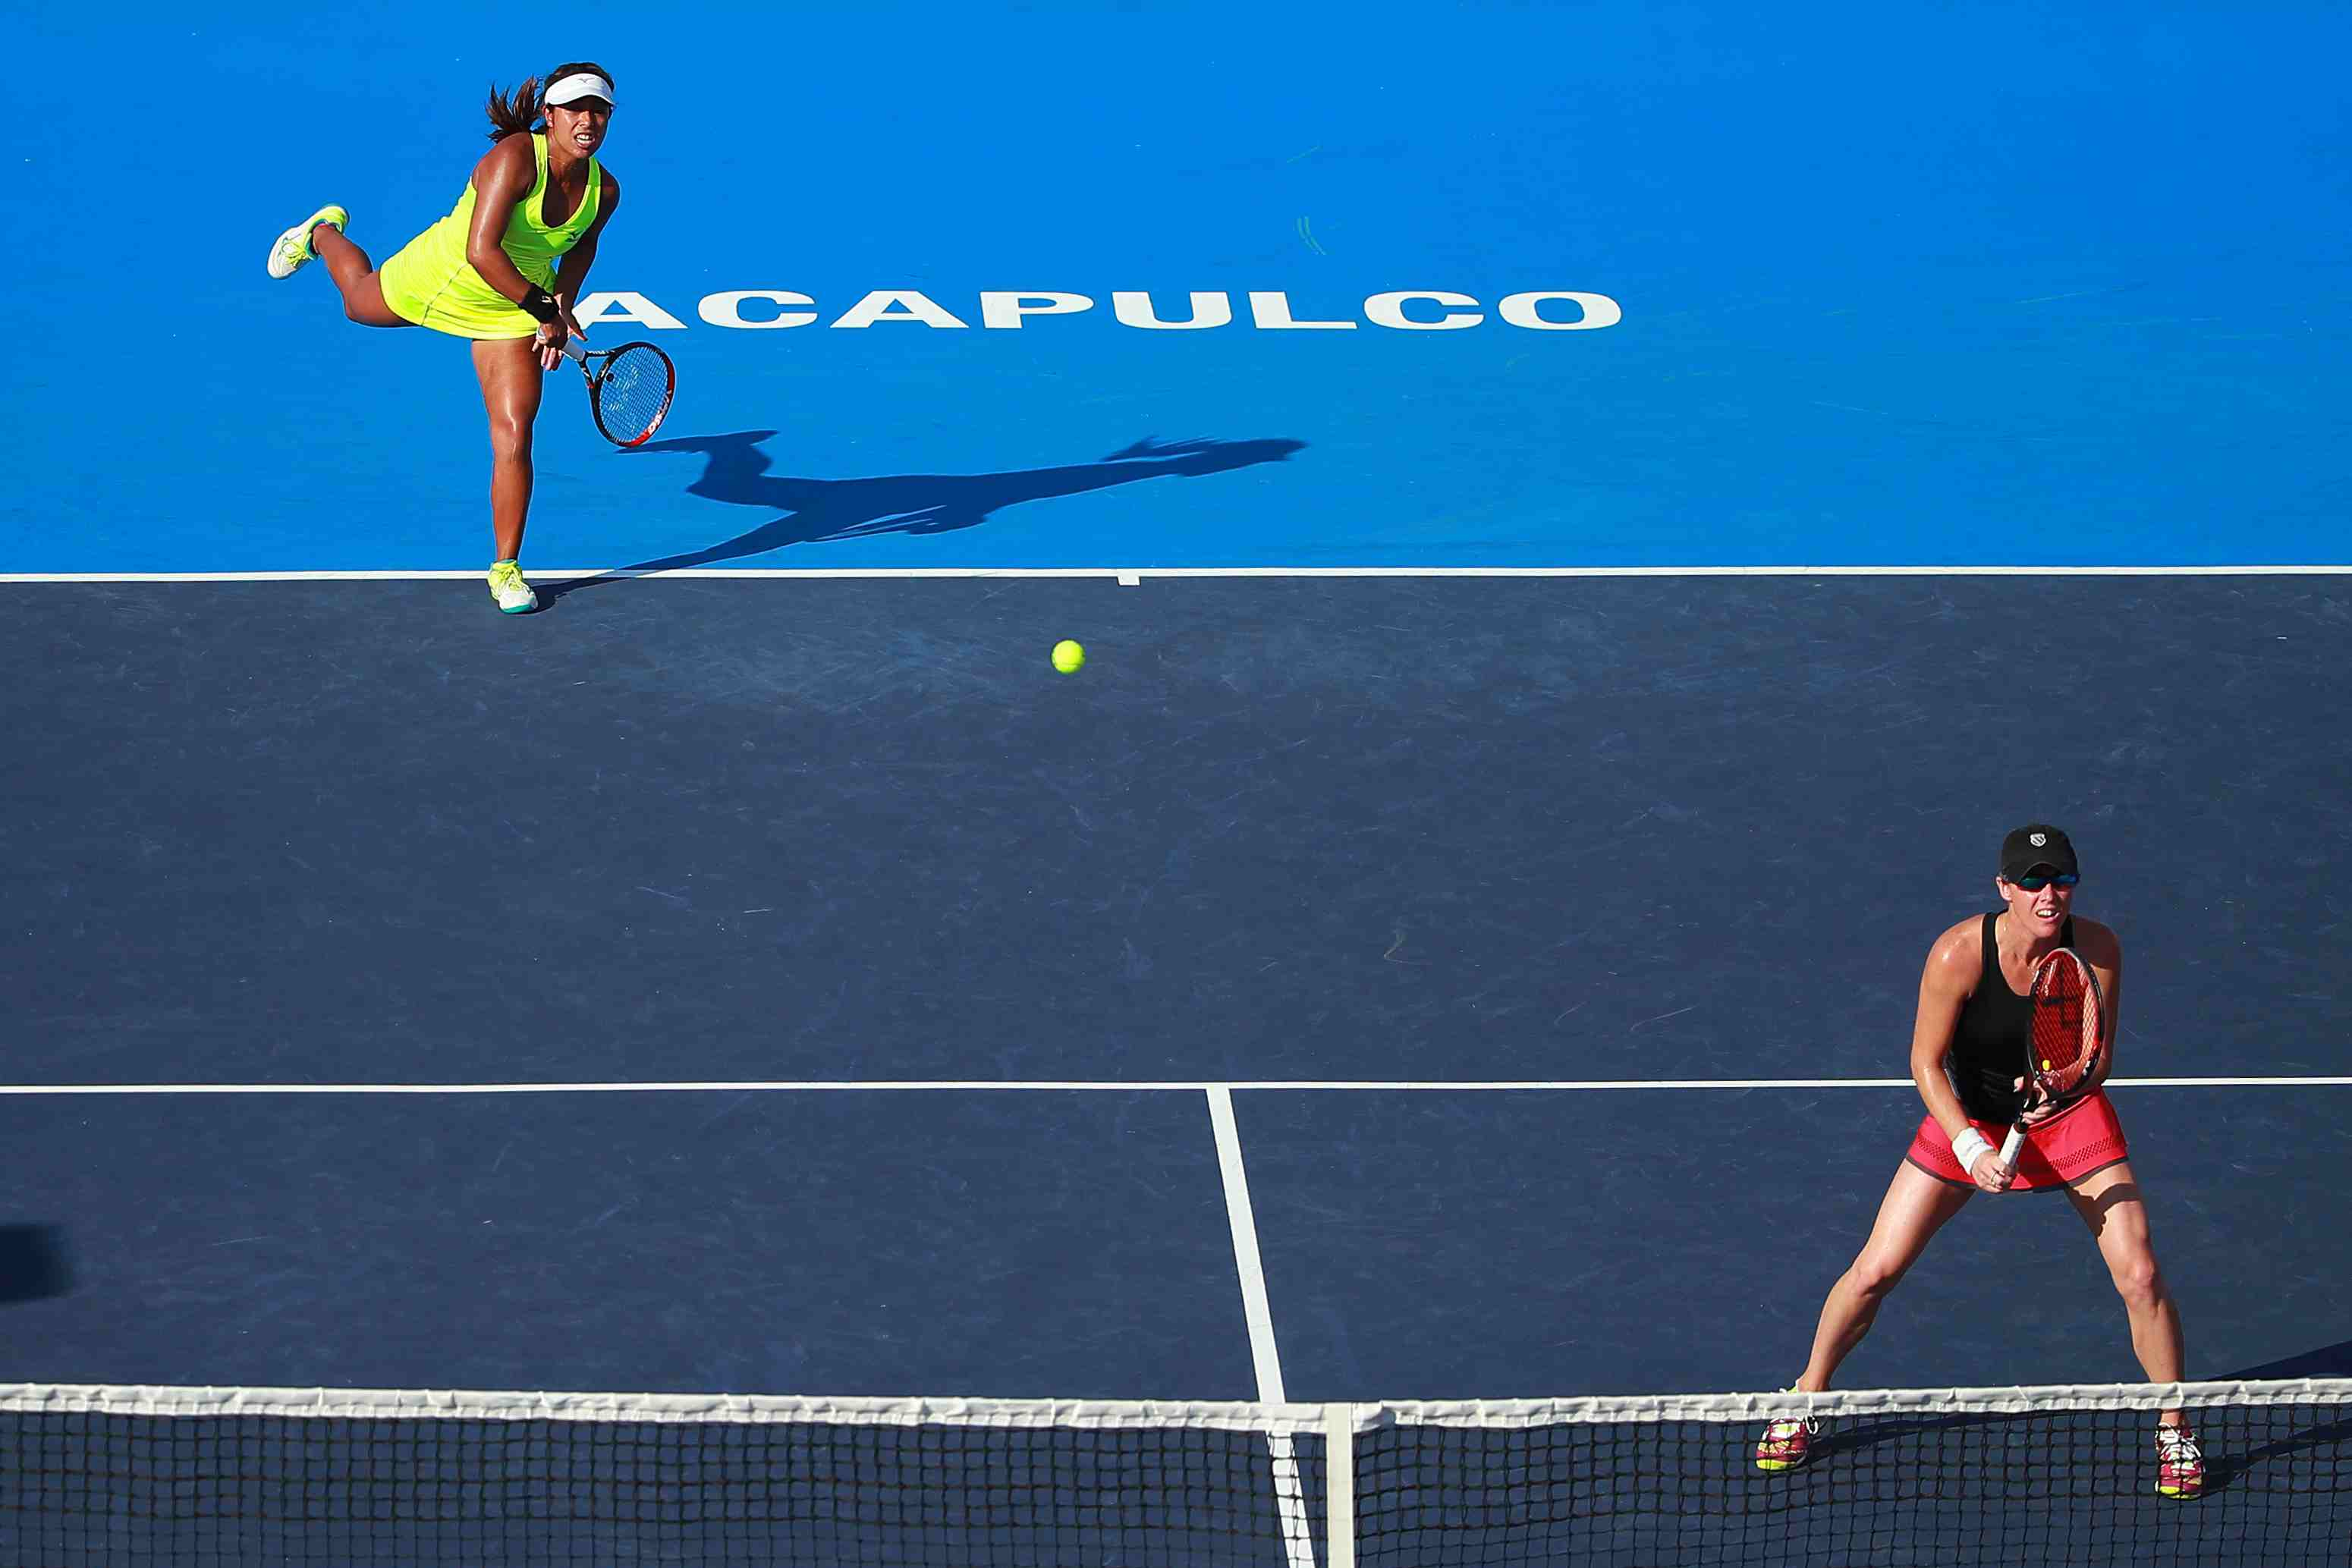 Kaitlyn Christian and Sabrina Santamaria of Great Britain in the Mexican Tennis Open in Acapulco